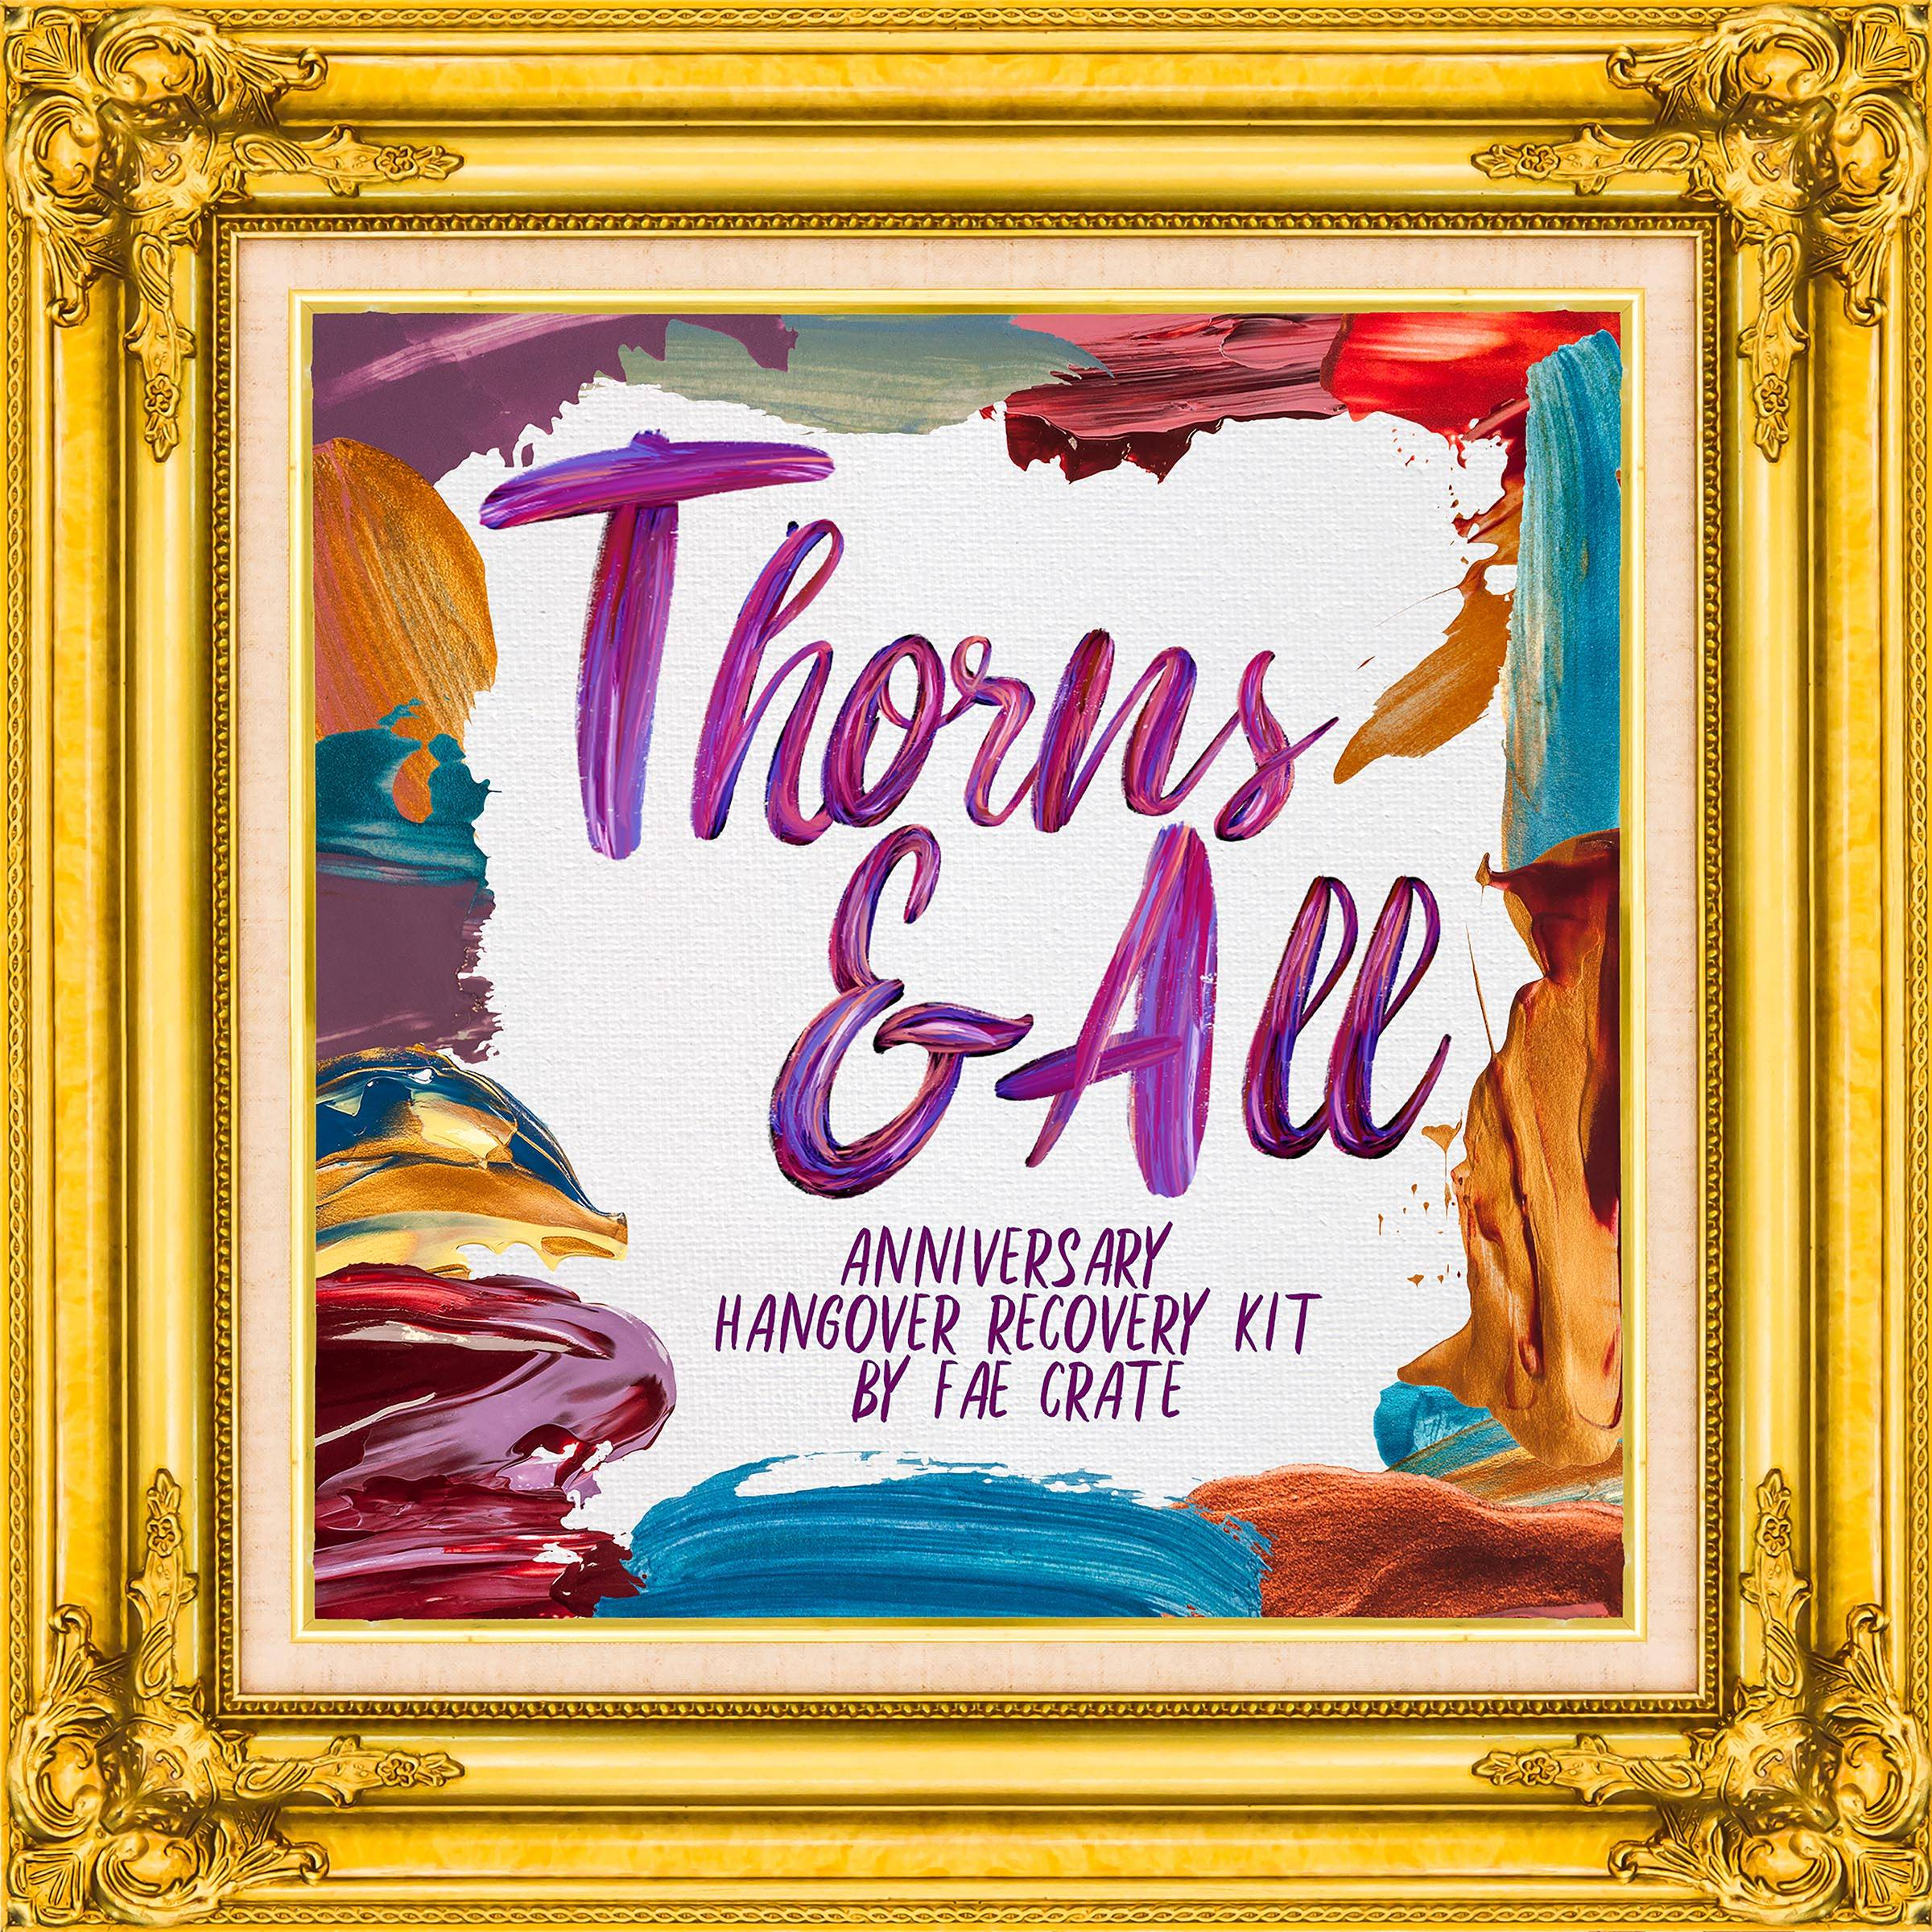 Thorns & All Anniversary Hangover Recovery Kit by Fae Crate